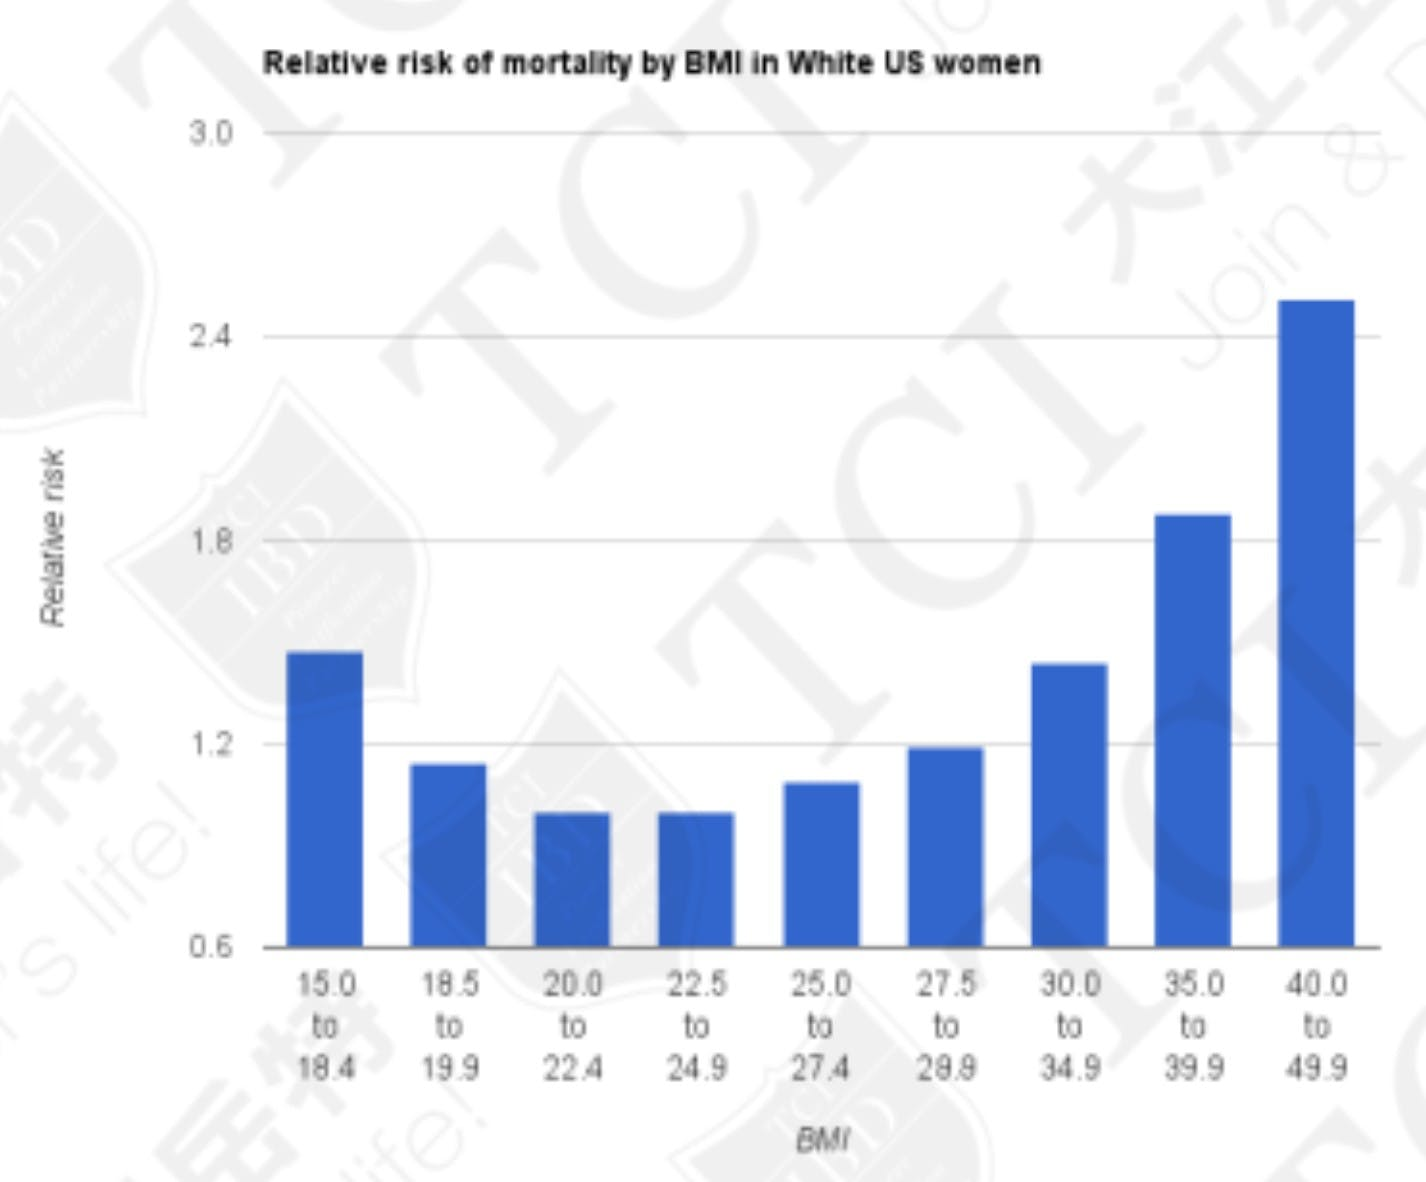 The relative risk of mortality by BMI in non-smoking US women, Data Source: Wikipedia